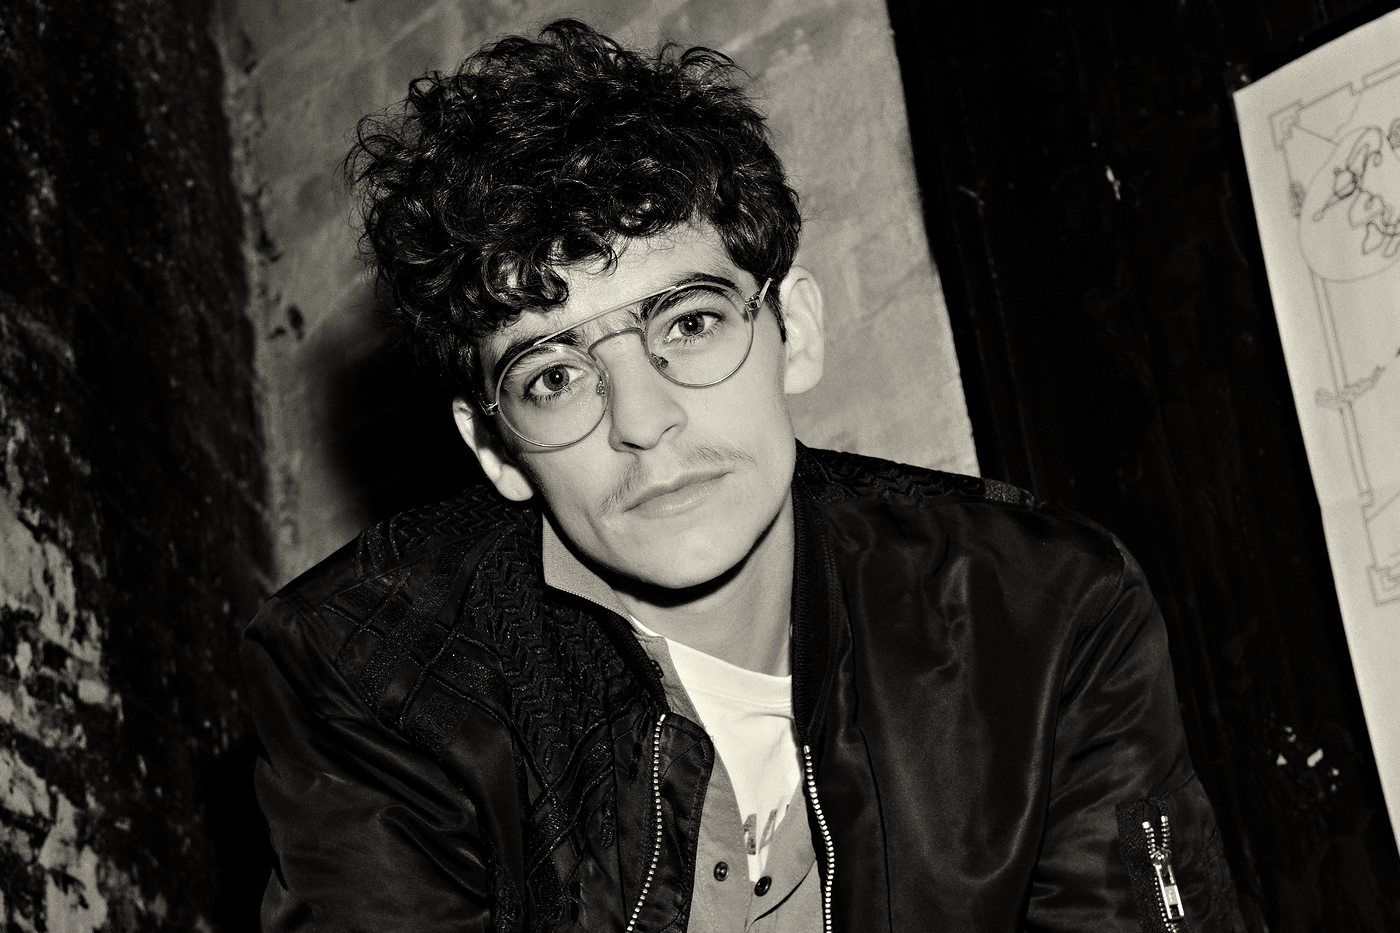 JD Samson | Atlanta, GA | 2 Nov 2011